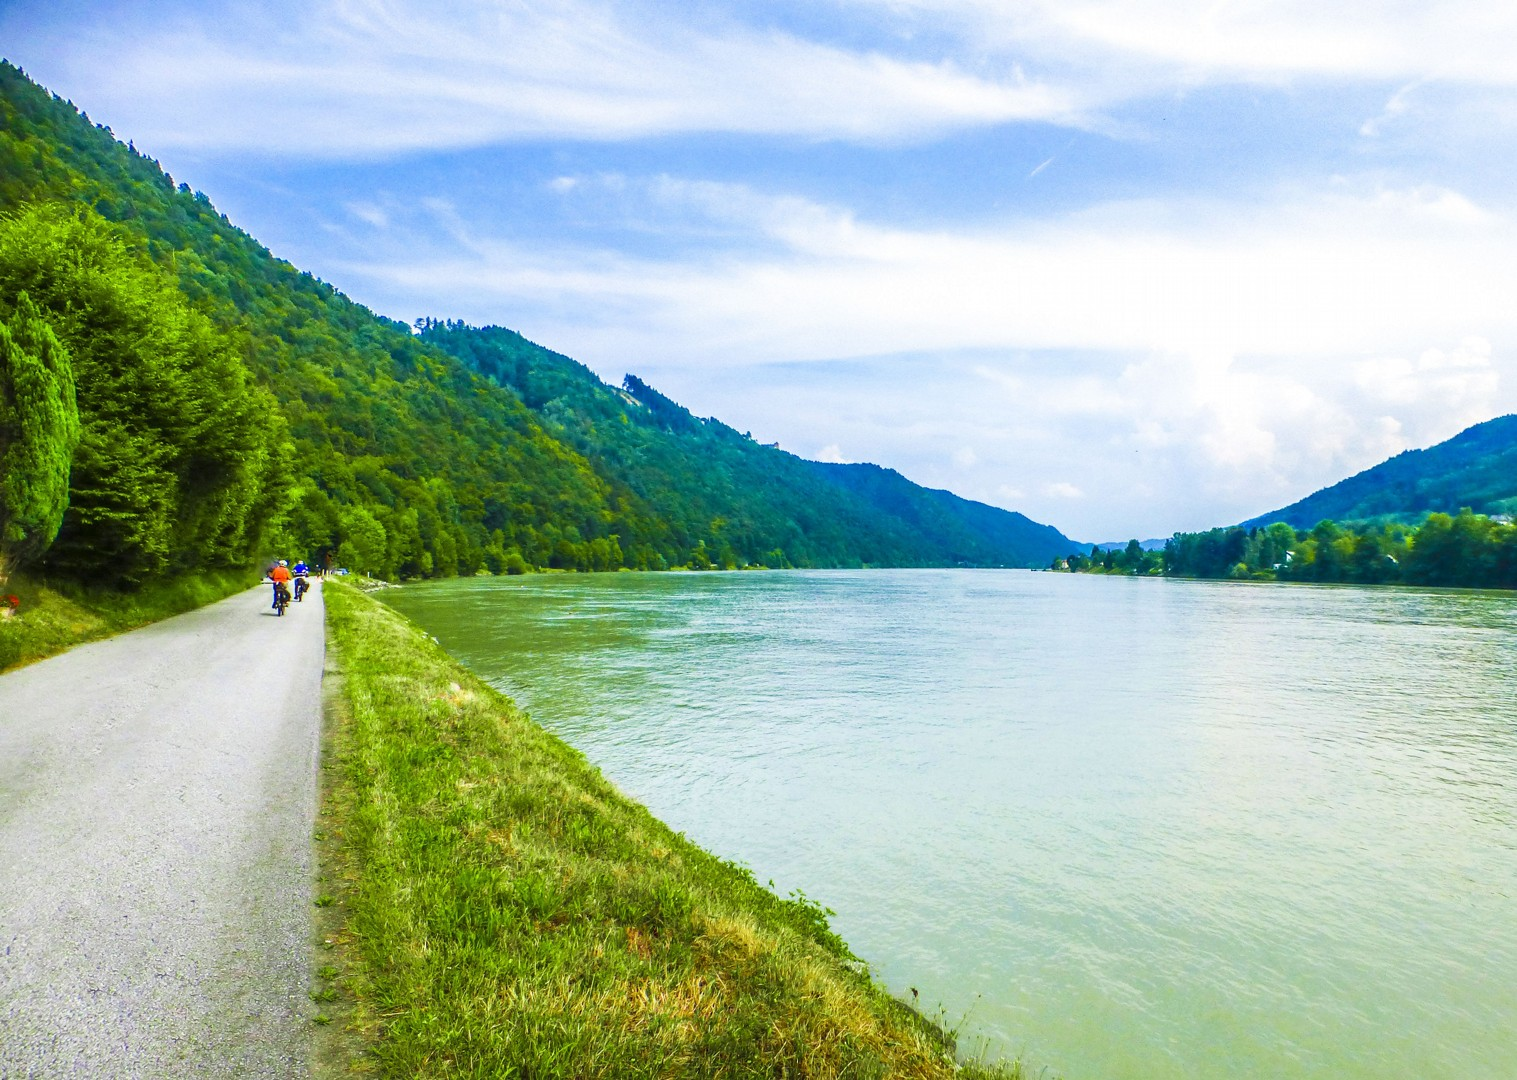 cycle-the-danube-beautiful-scenery-river-germany-austria.jpg - Germany and Austria - The Danube Cyclepath (10 Days) - Self-Guided Leisure Cycling Holiday - Leisure Cycling